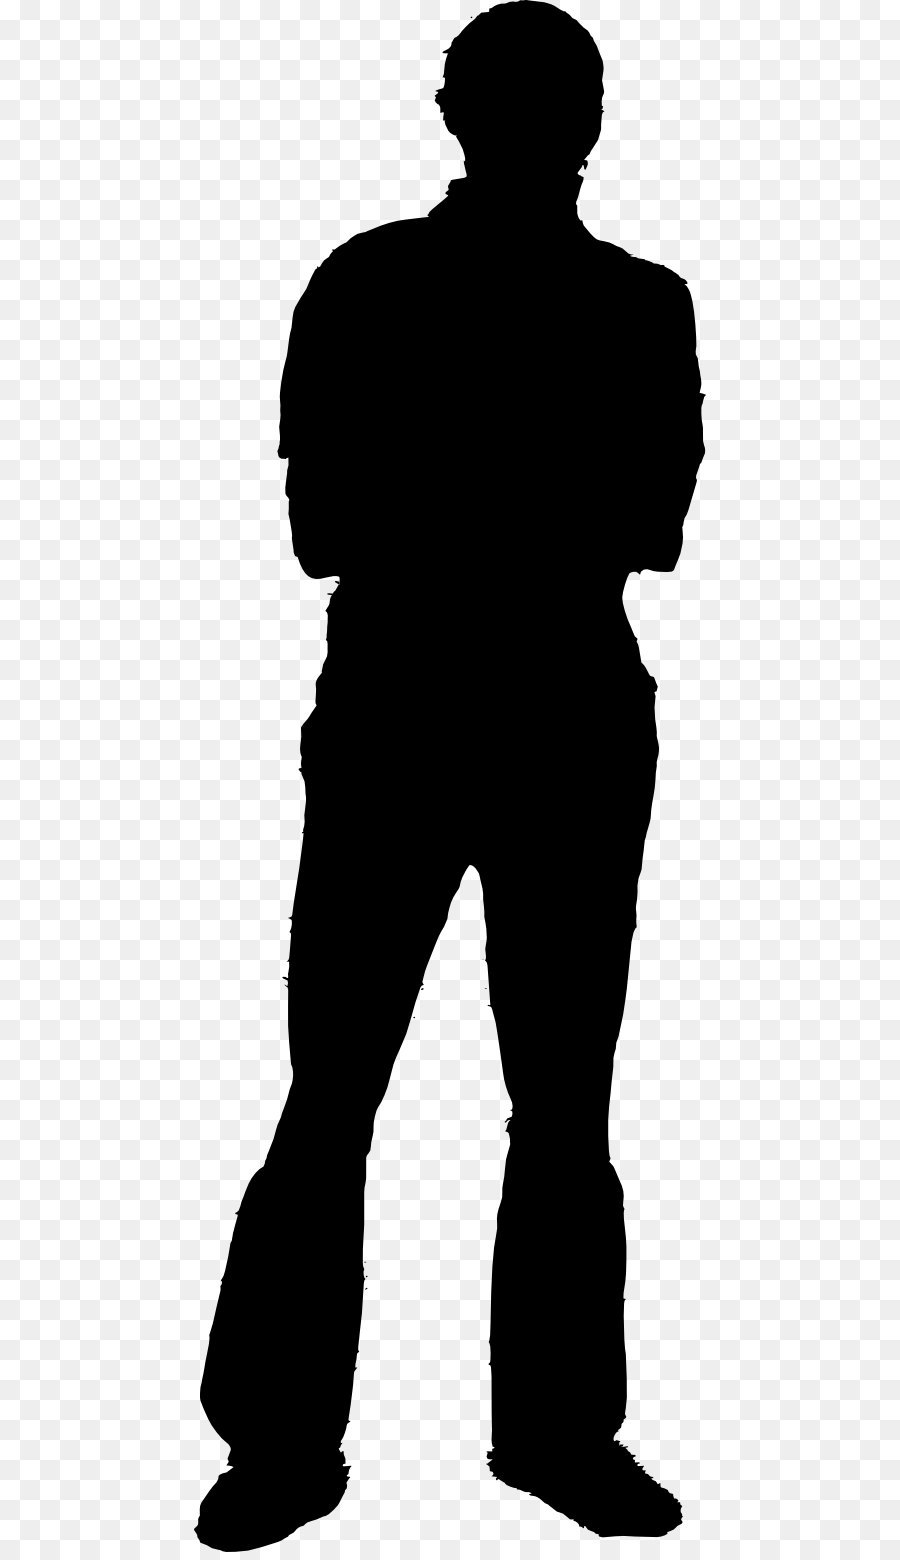 Silhouette Standing png download.